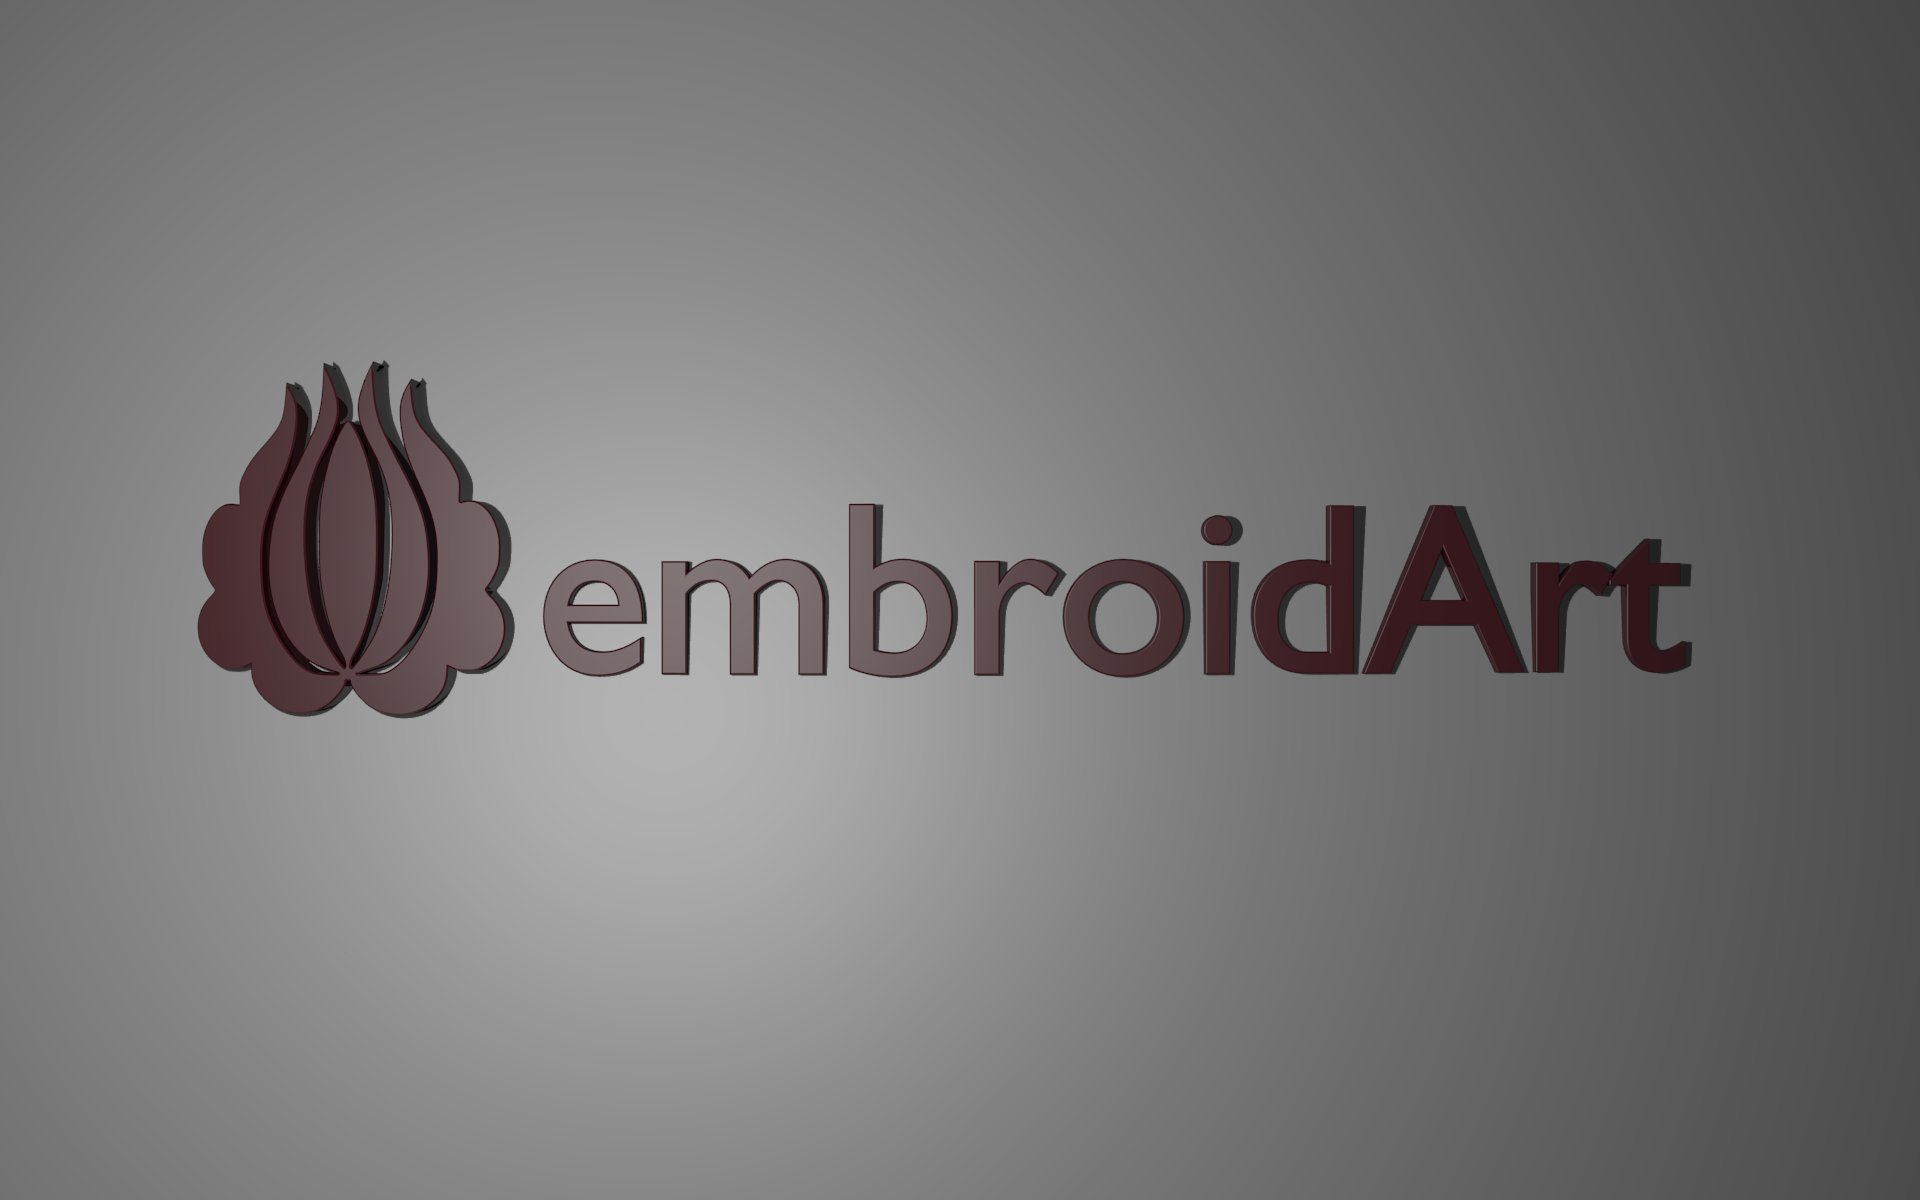 embroidArt wallpapper